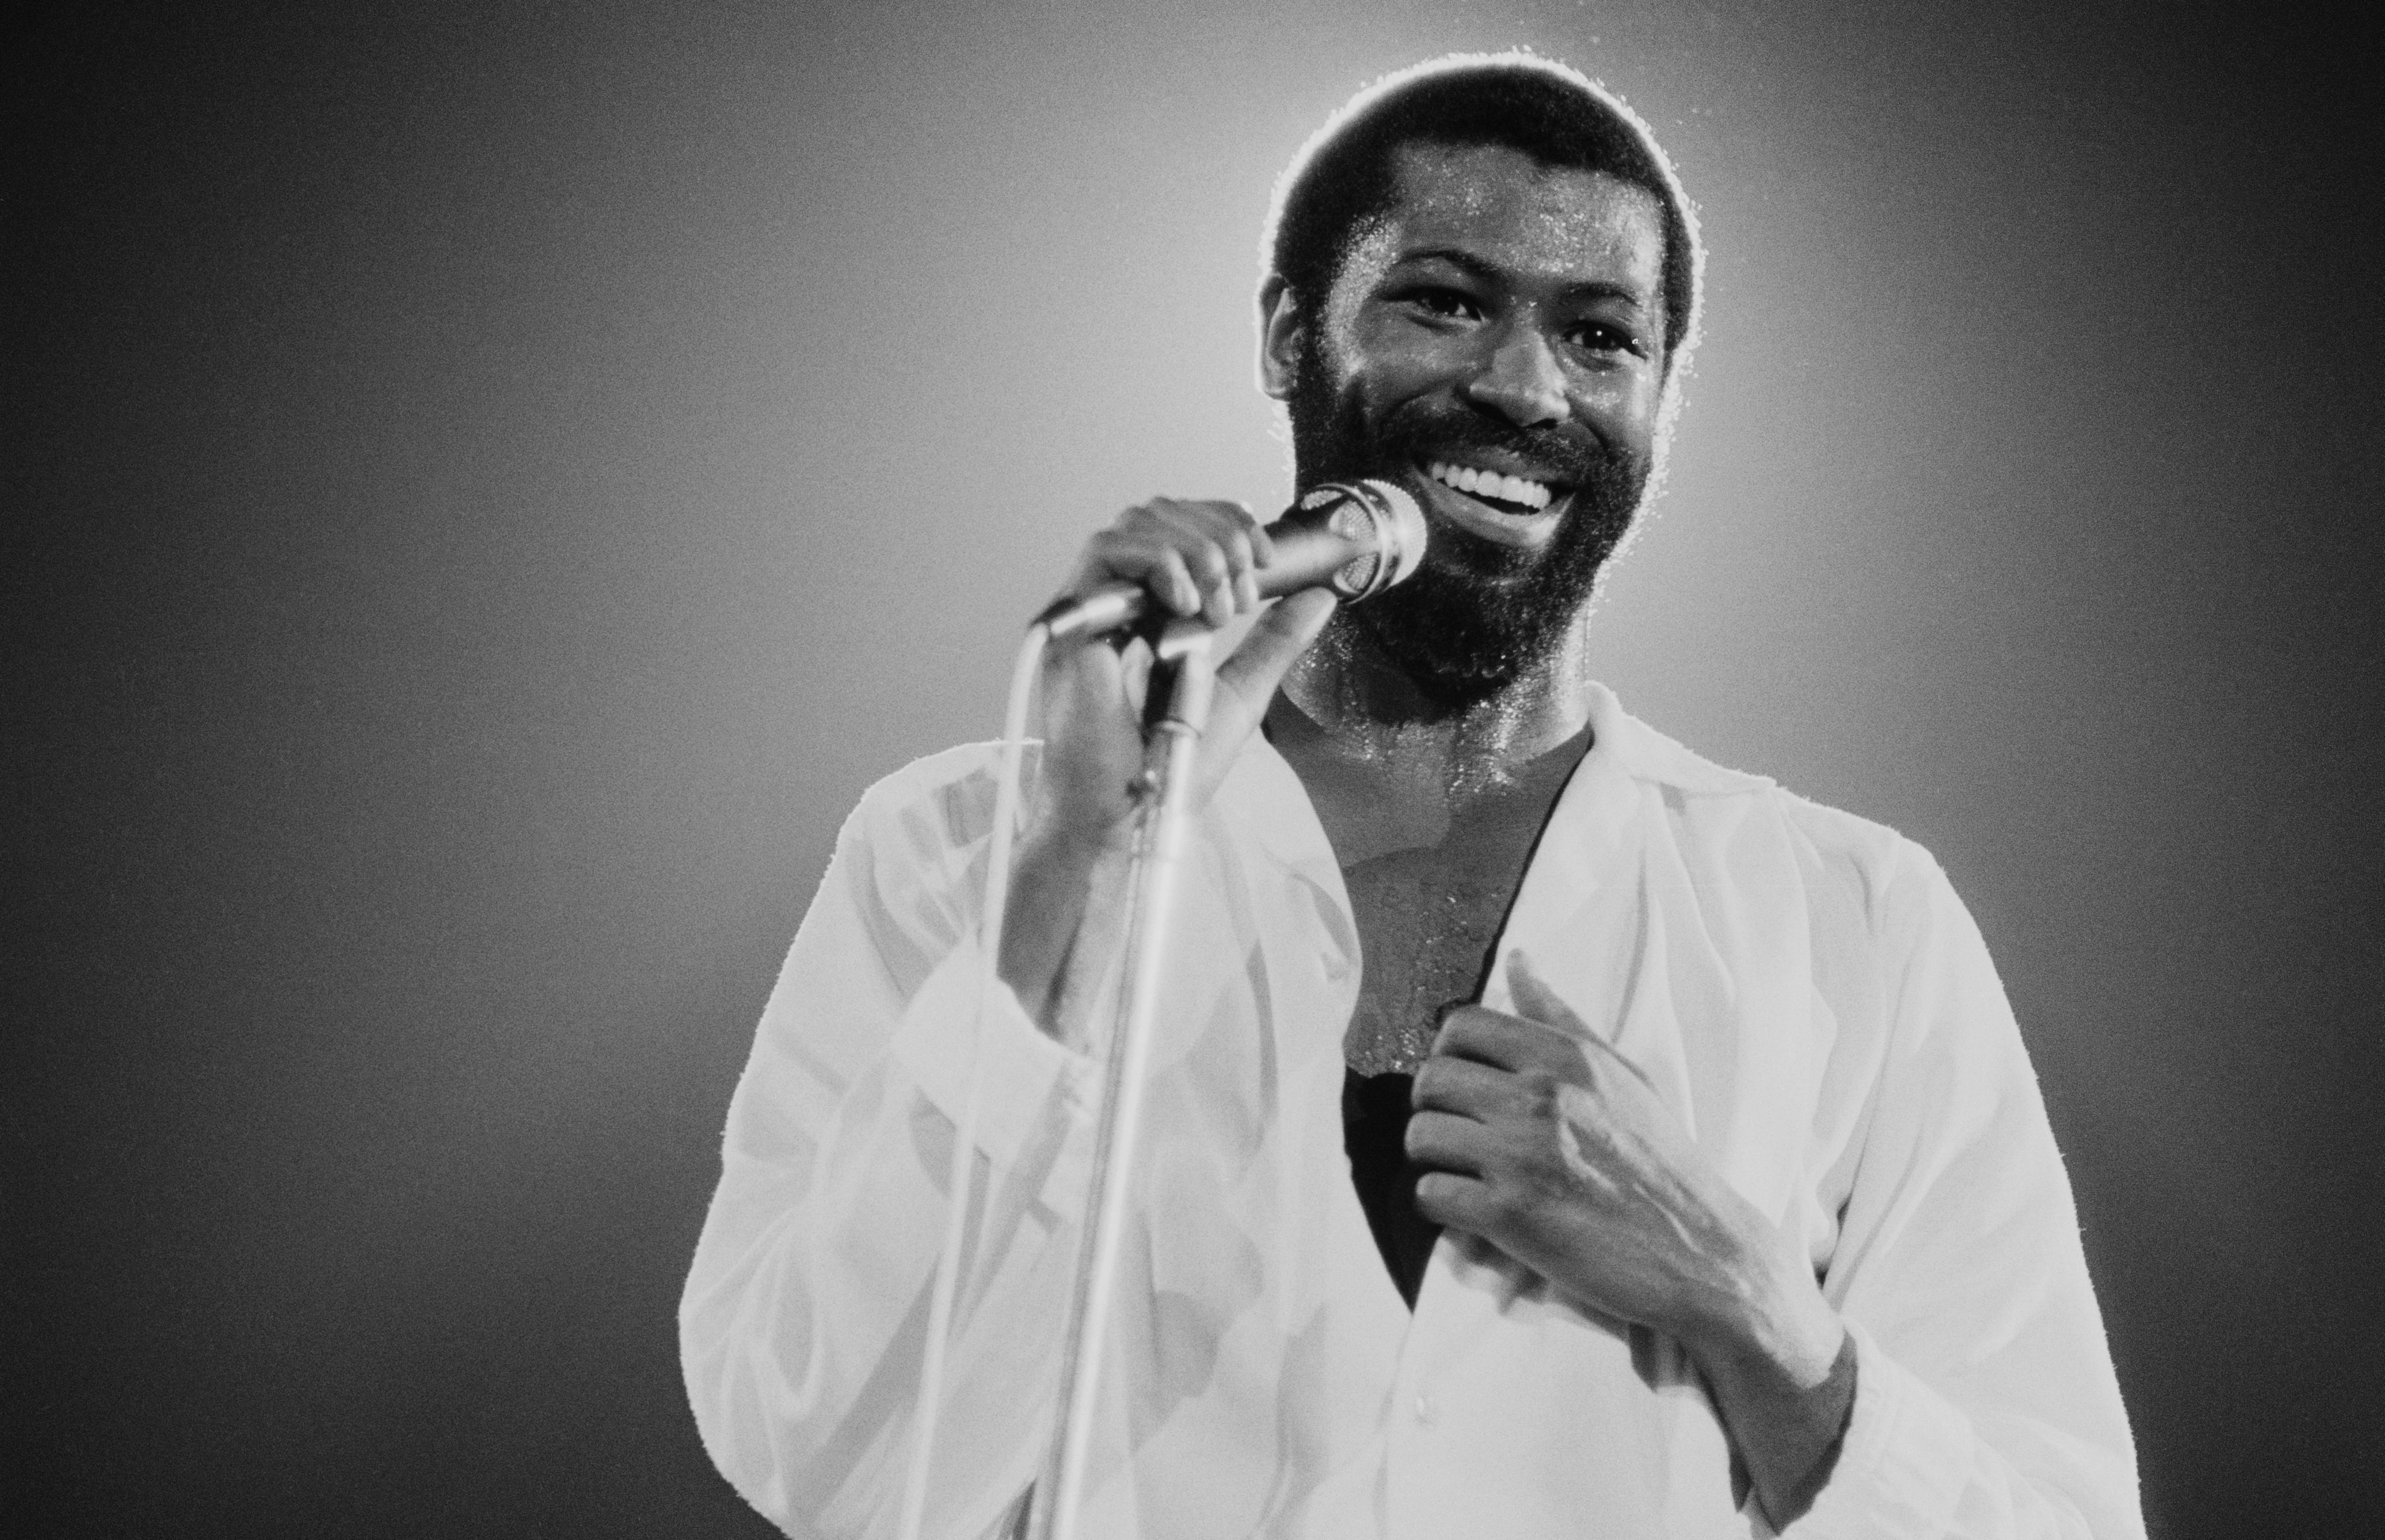 Teddy Pendergrass performing in New York, 1981. | Photo: Getty Images